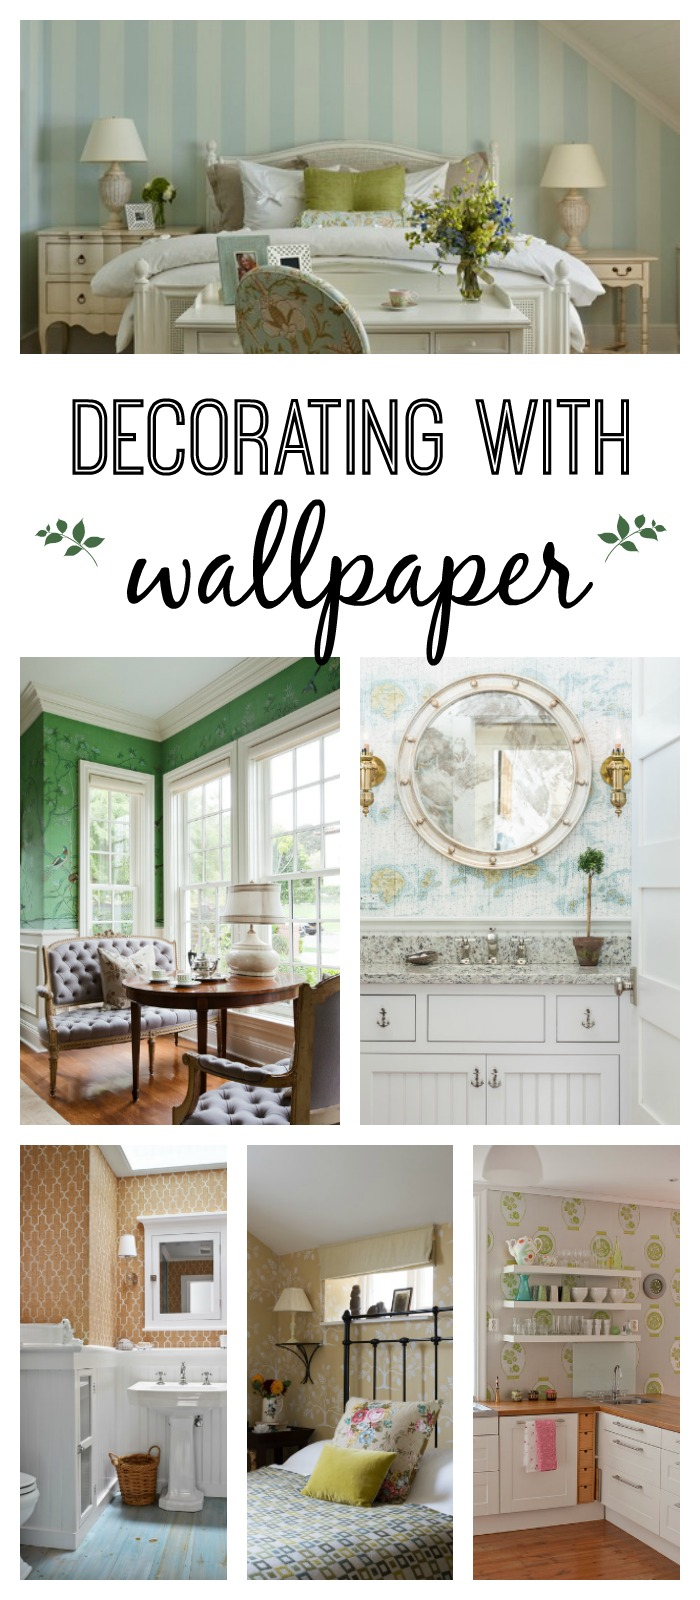 Decorating with wallpaper 13 ideas town country living decorating with wallpaper 13 ideas amipublicfo Choice Image